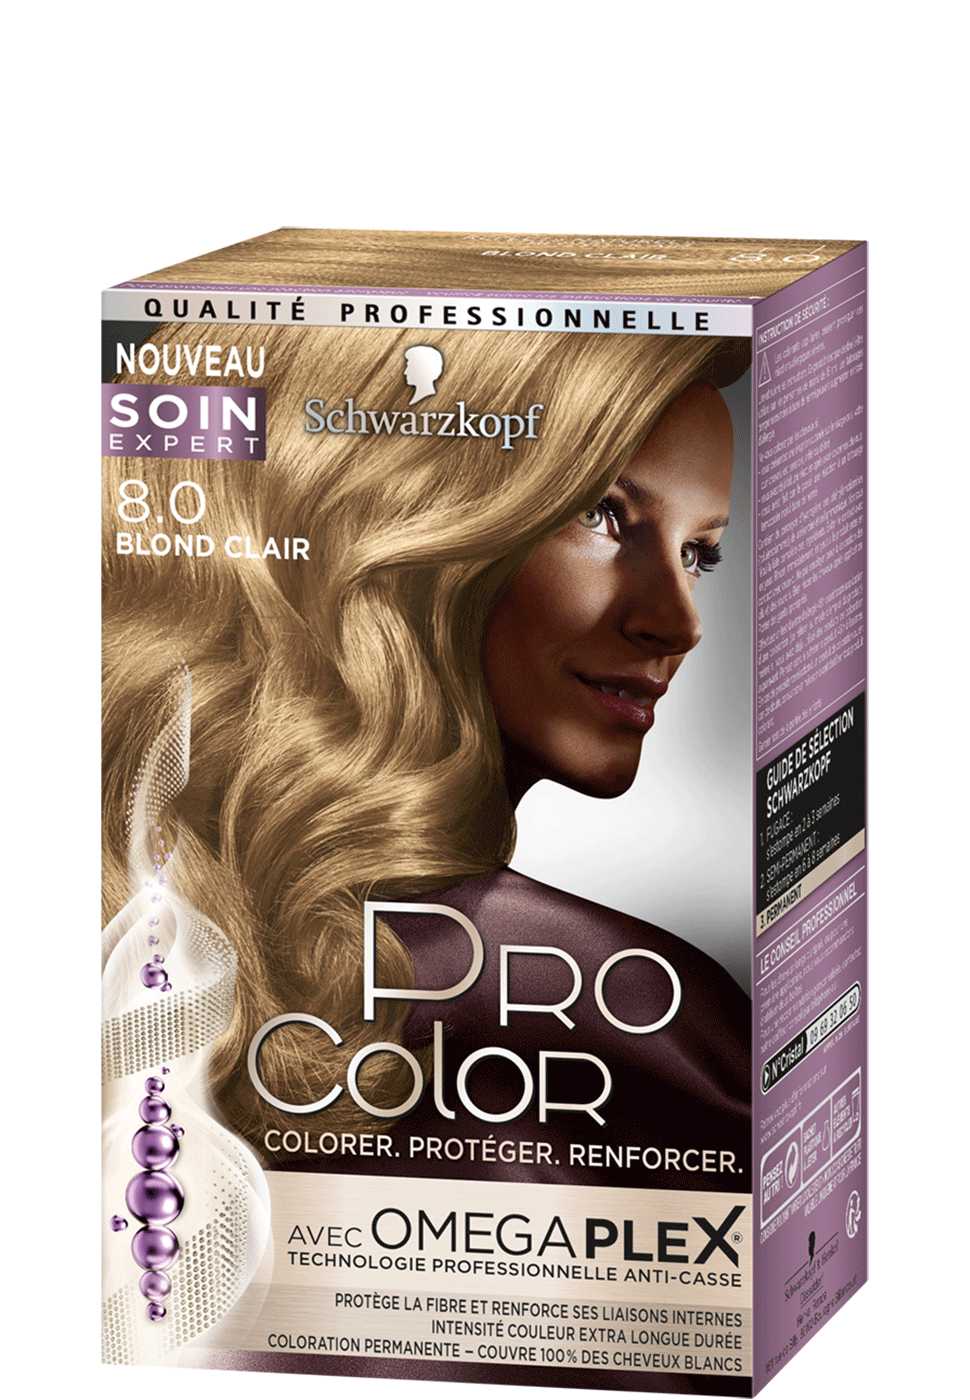 Pro Color 8-0 Blond Clair